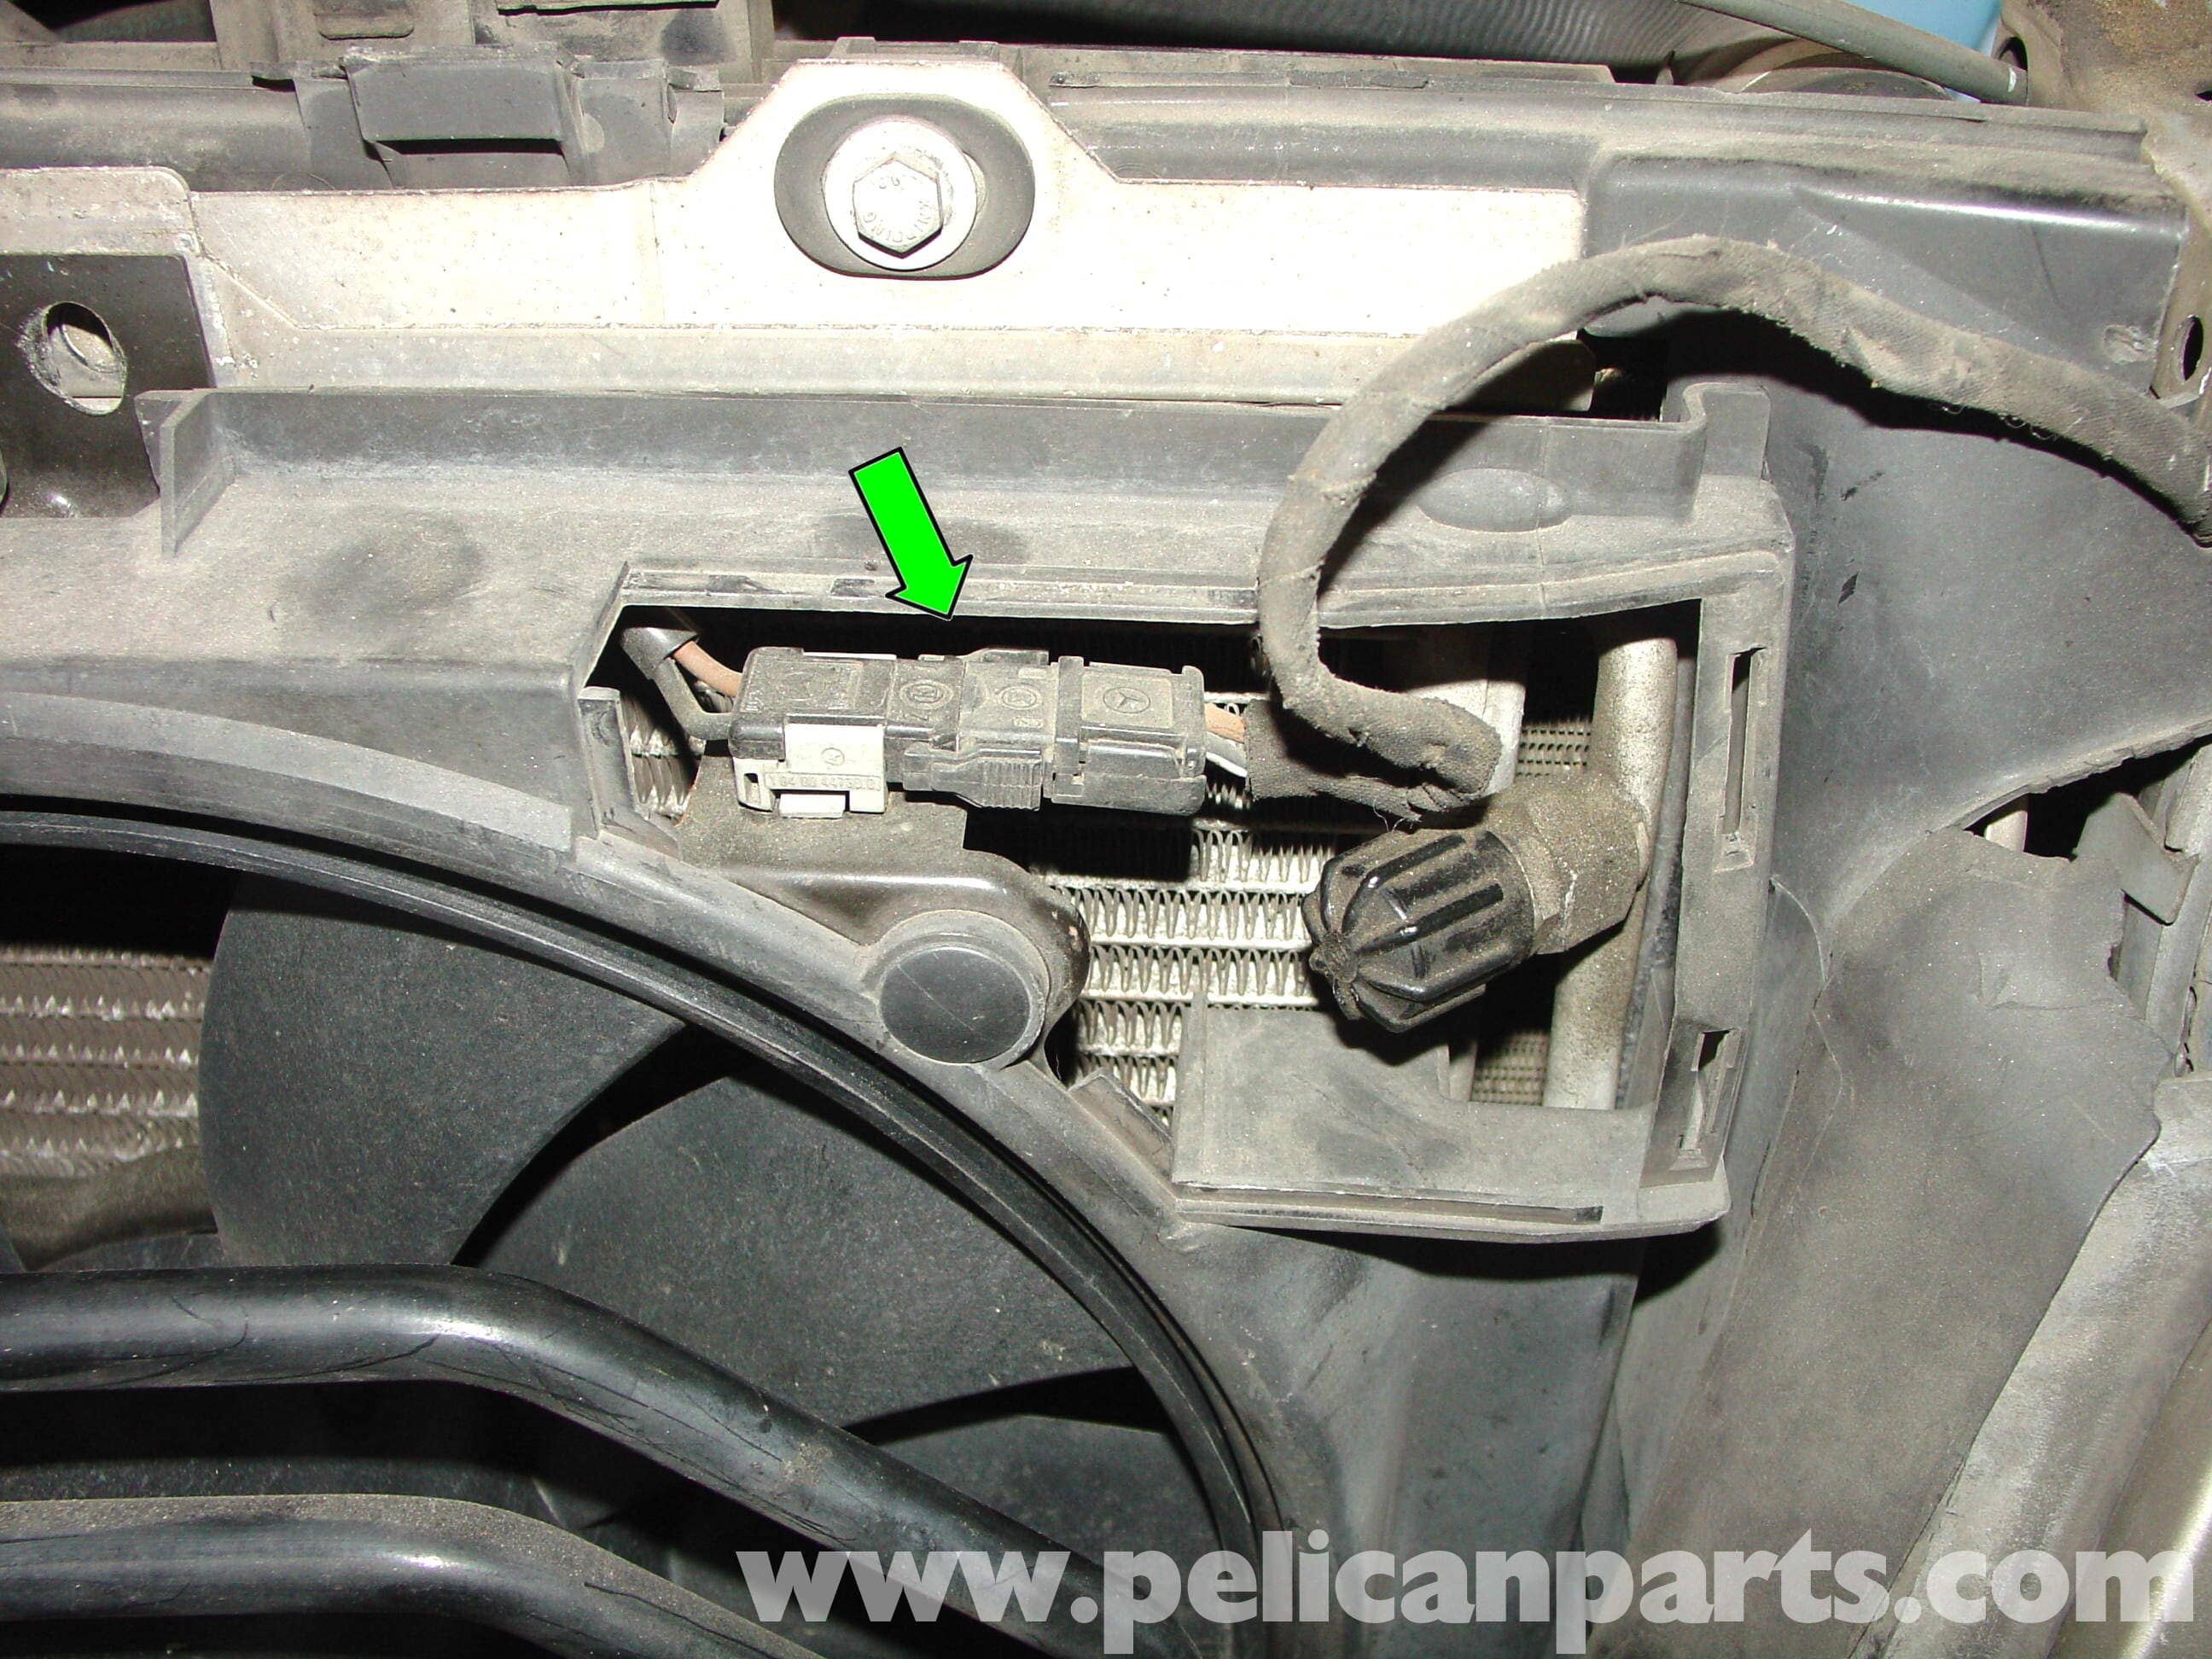 honda accord alternator wiring diagram mercedes benz w210 auxiliary cooling fan belt replacement  mercedes benz w210 auxiliary cooling fan belt replacement